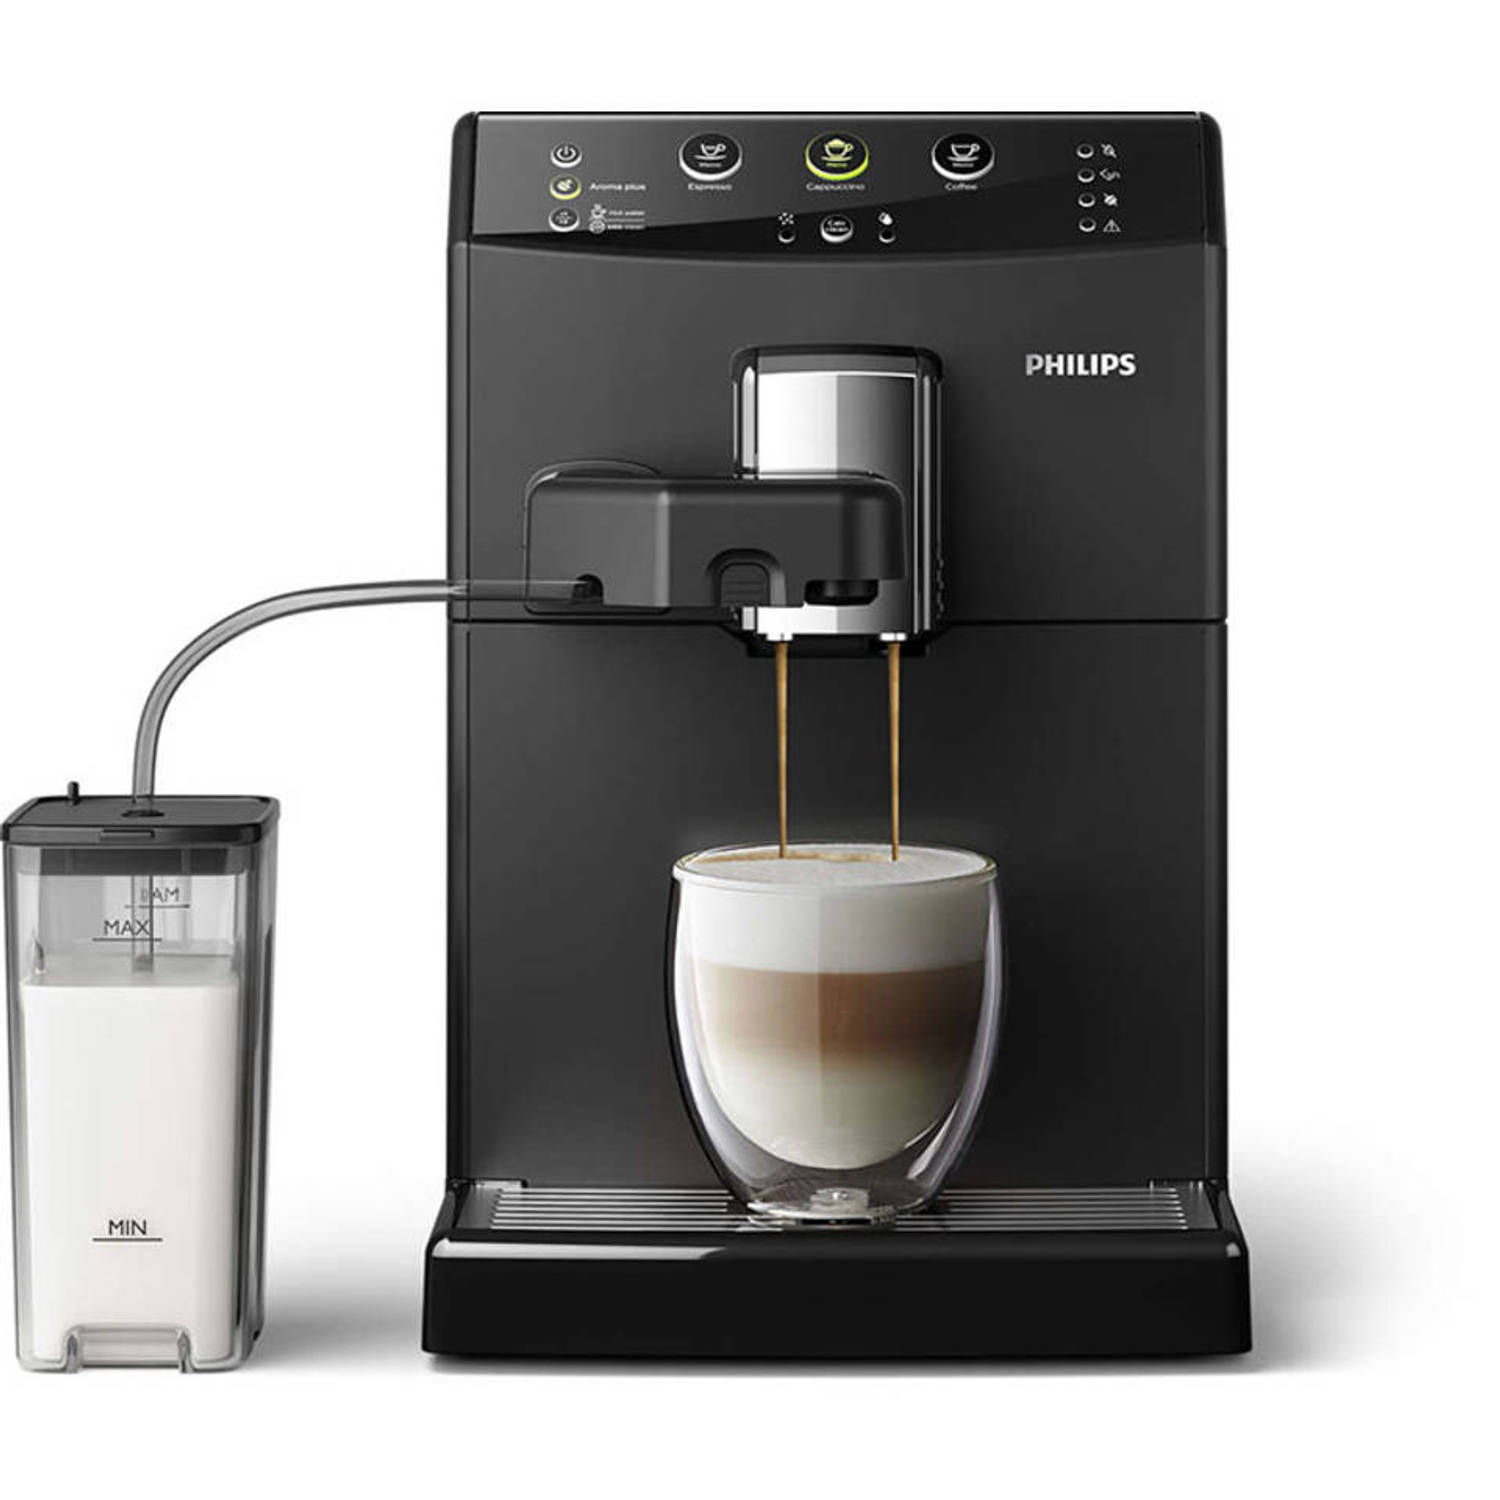 Philips volautomaat espressomachine Easy Capuccino 3000 series HD8829/01 - zwart